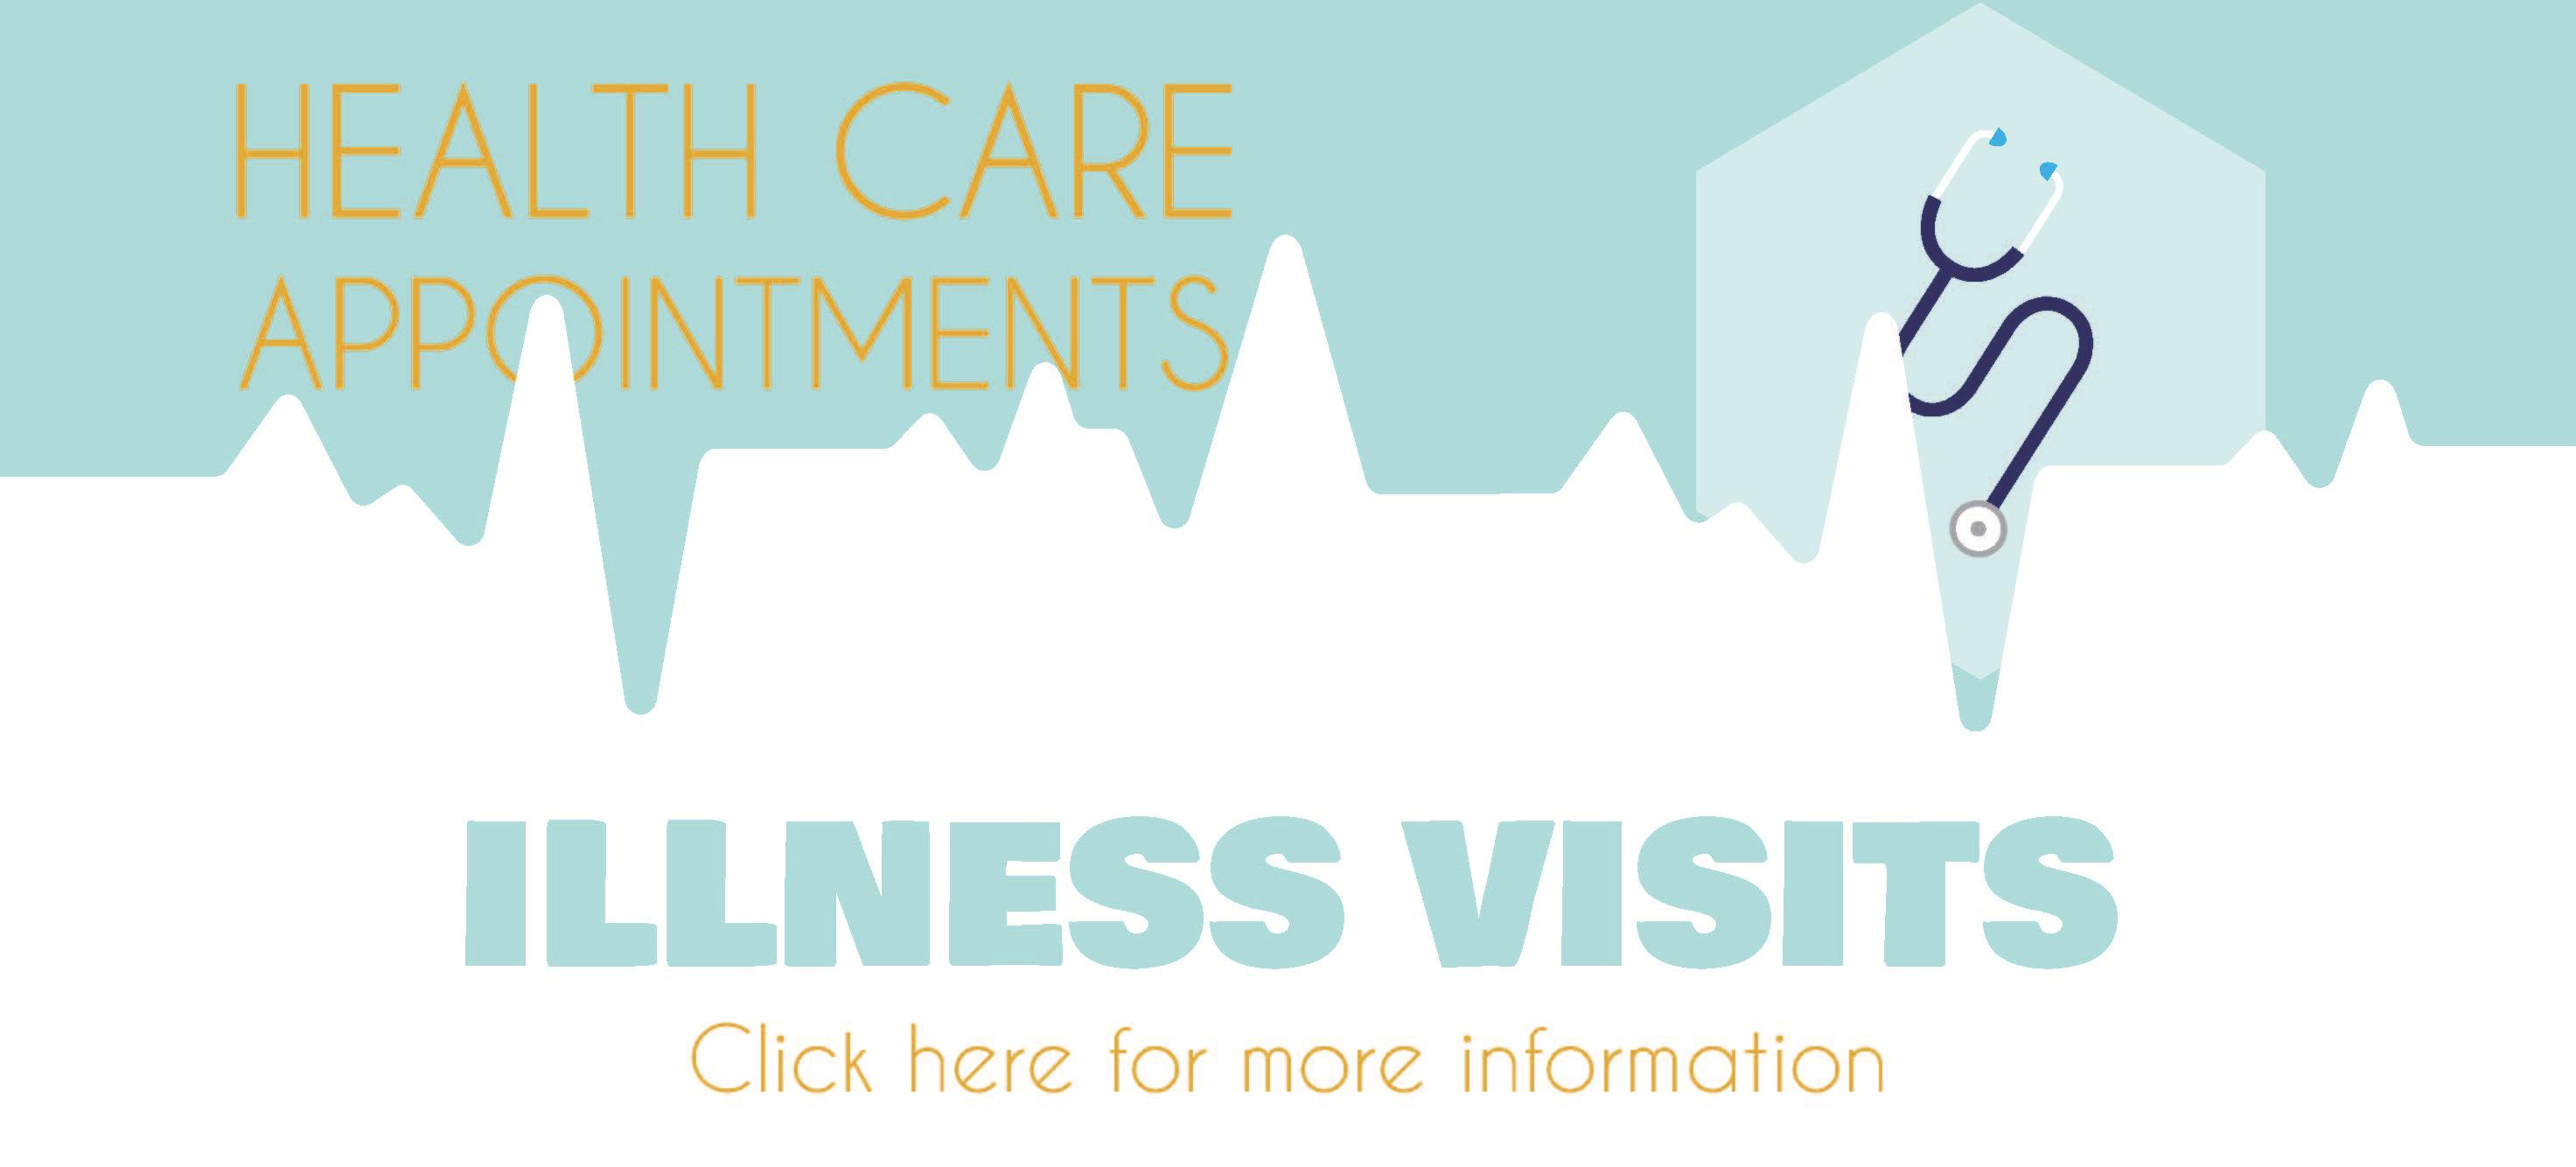 Health Care Appointments Illness Visits Poster